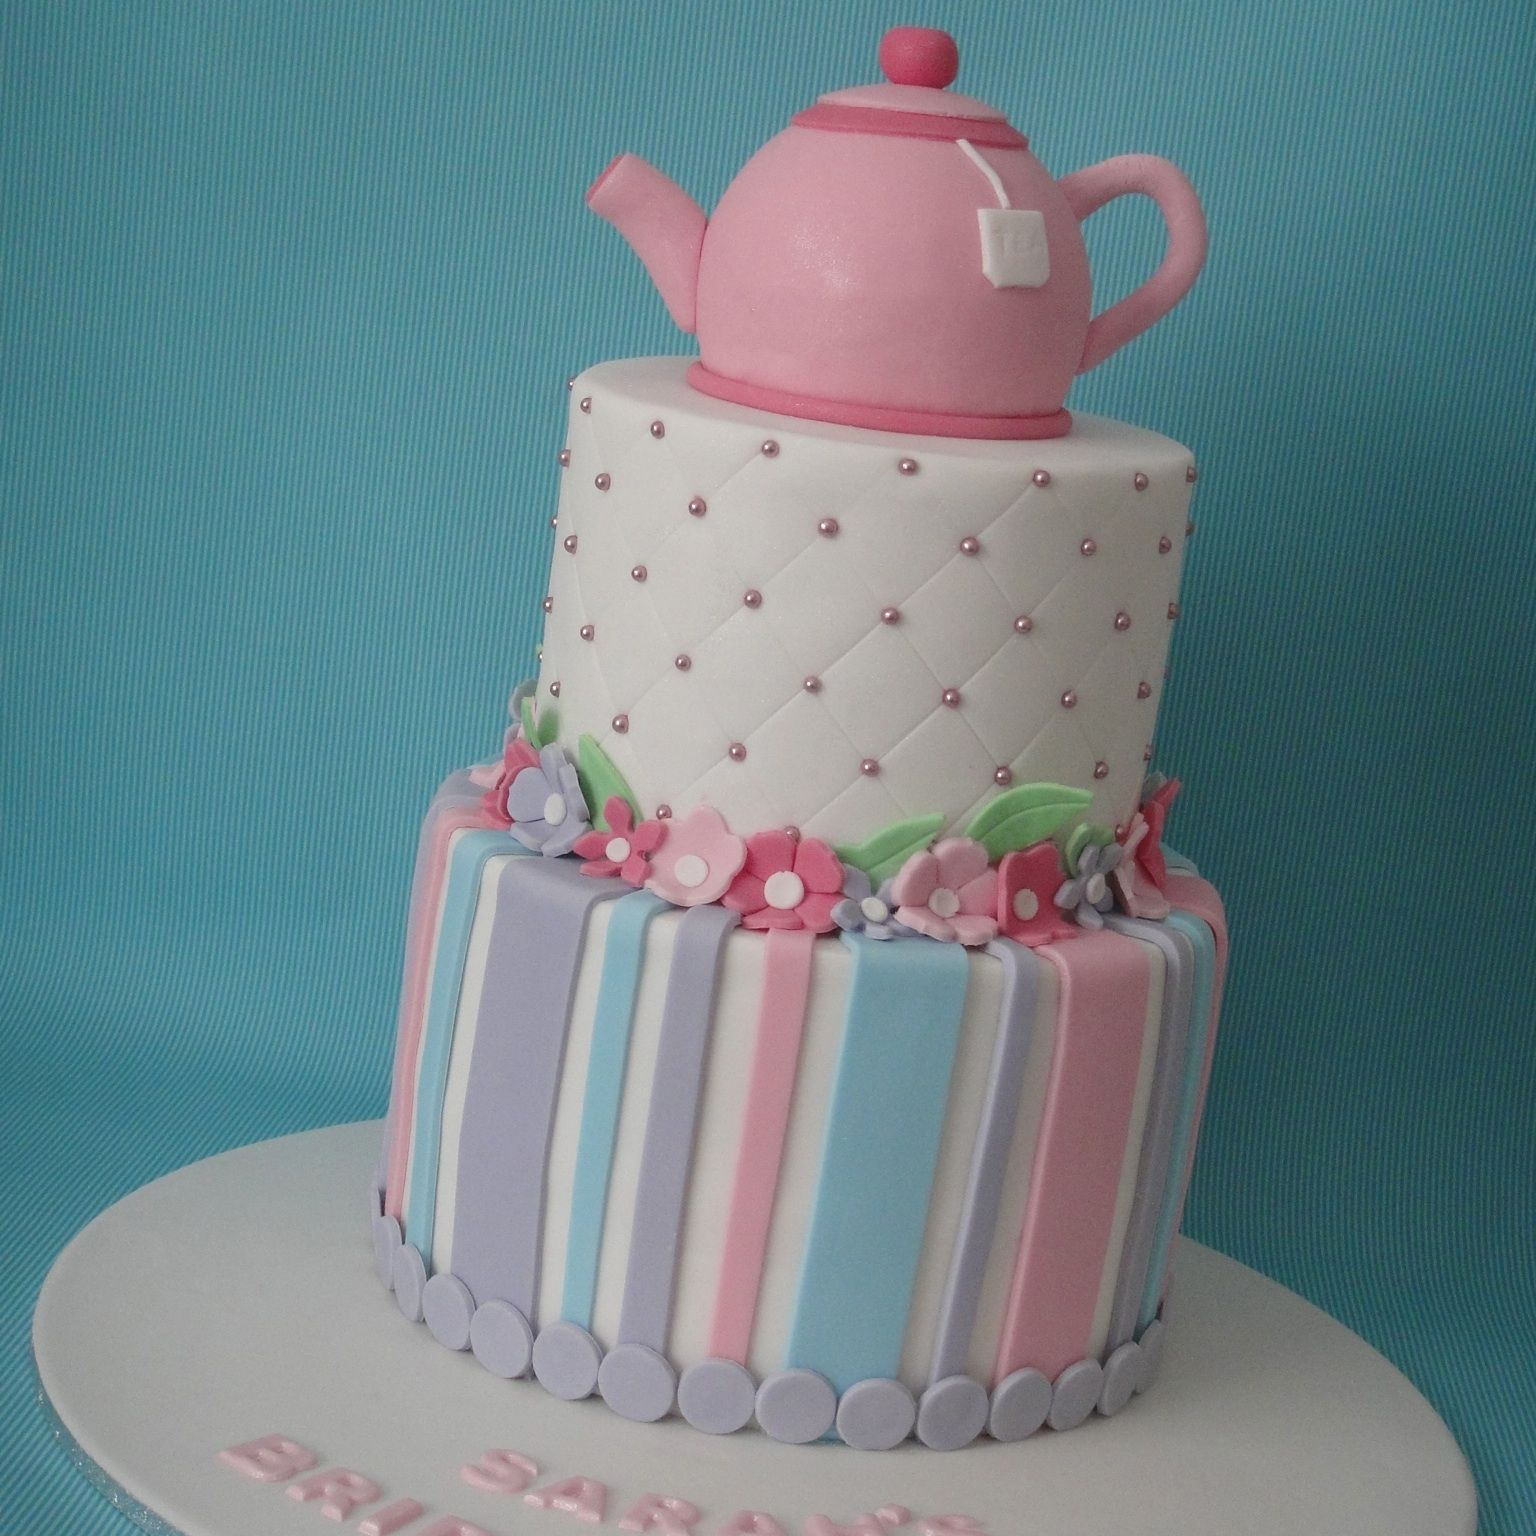 Kitchen Tea Cake Bridal Shower Kitchen Tea Cake Imagine Cakes Gallery Pinterest